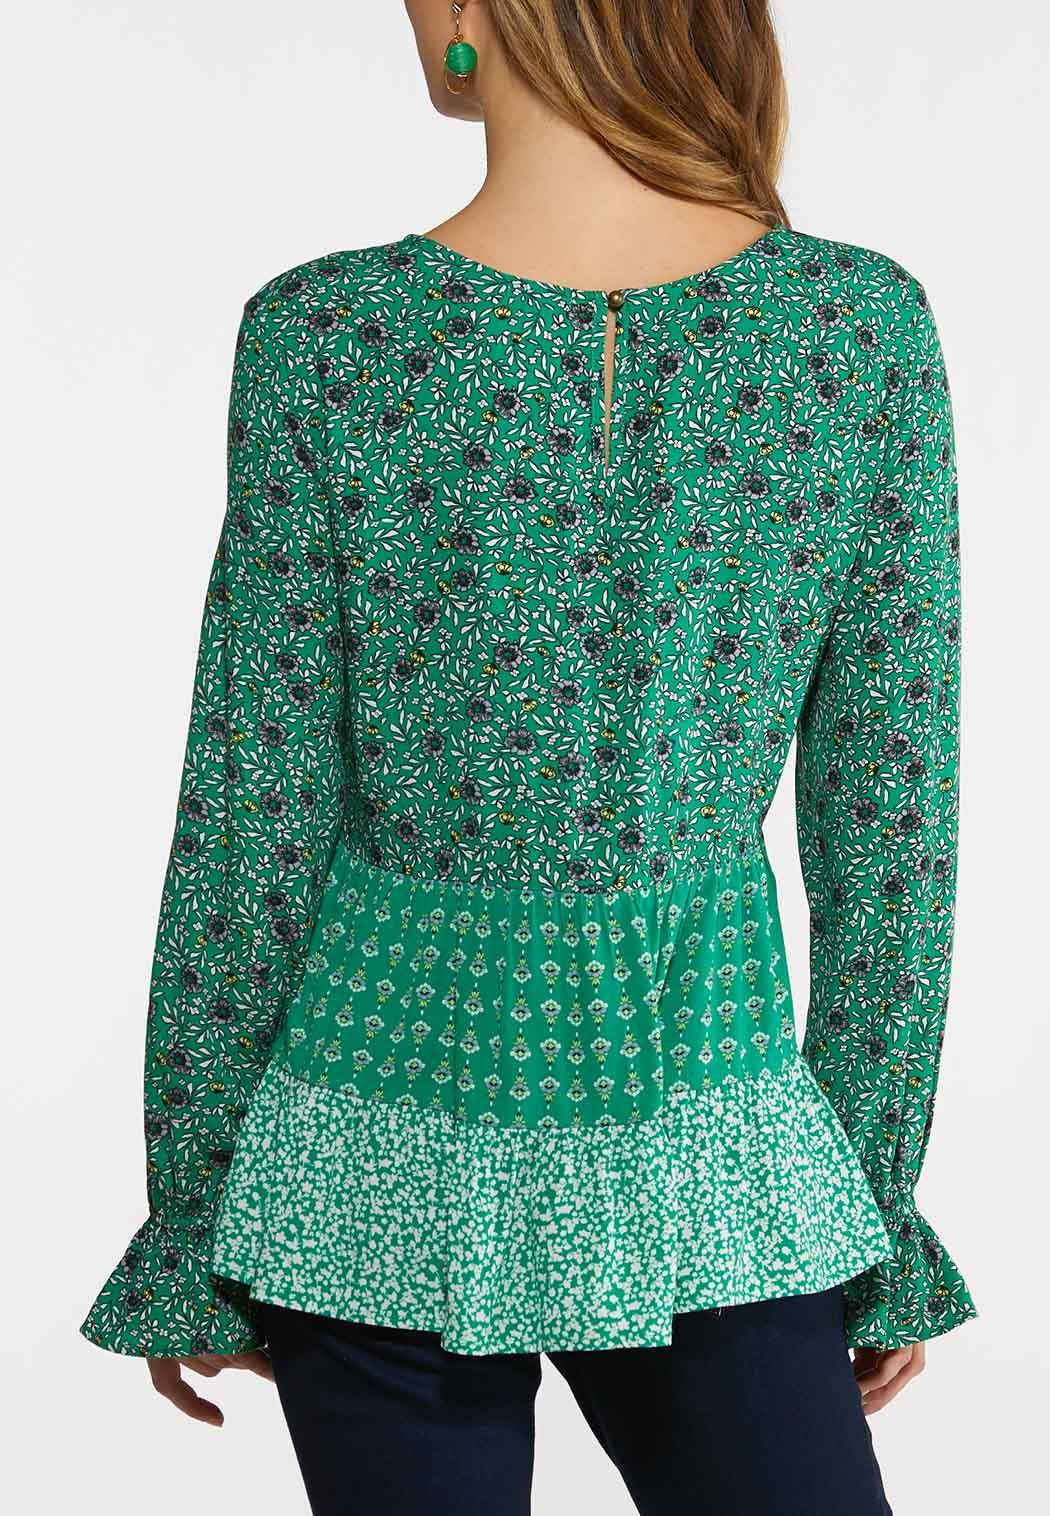 Plus Size Green Mixed Floral Top (Item #44224679)